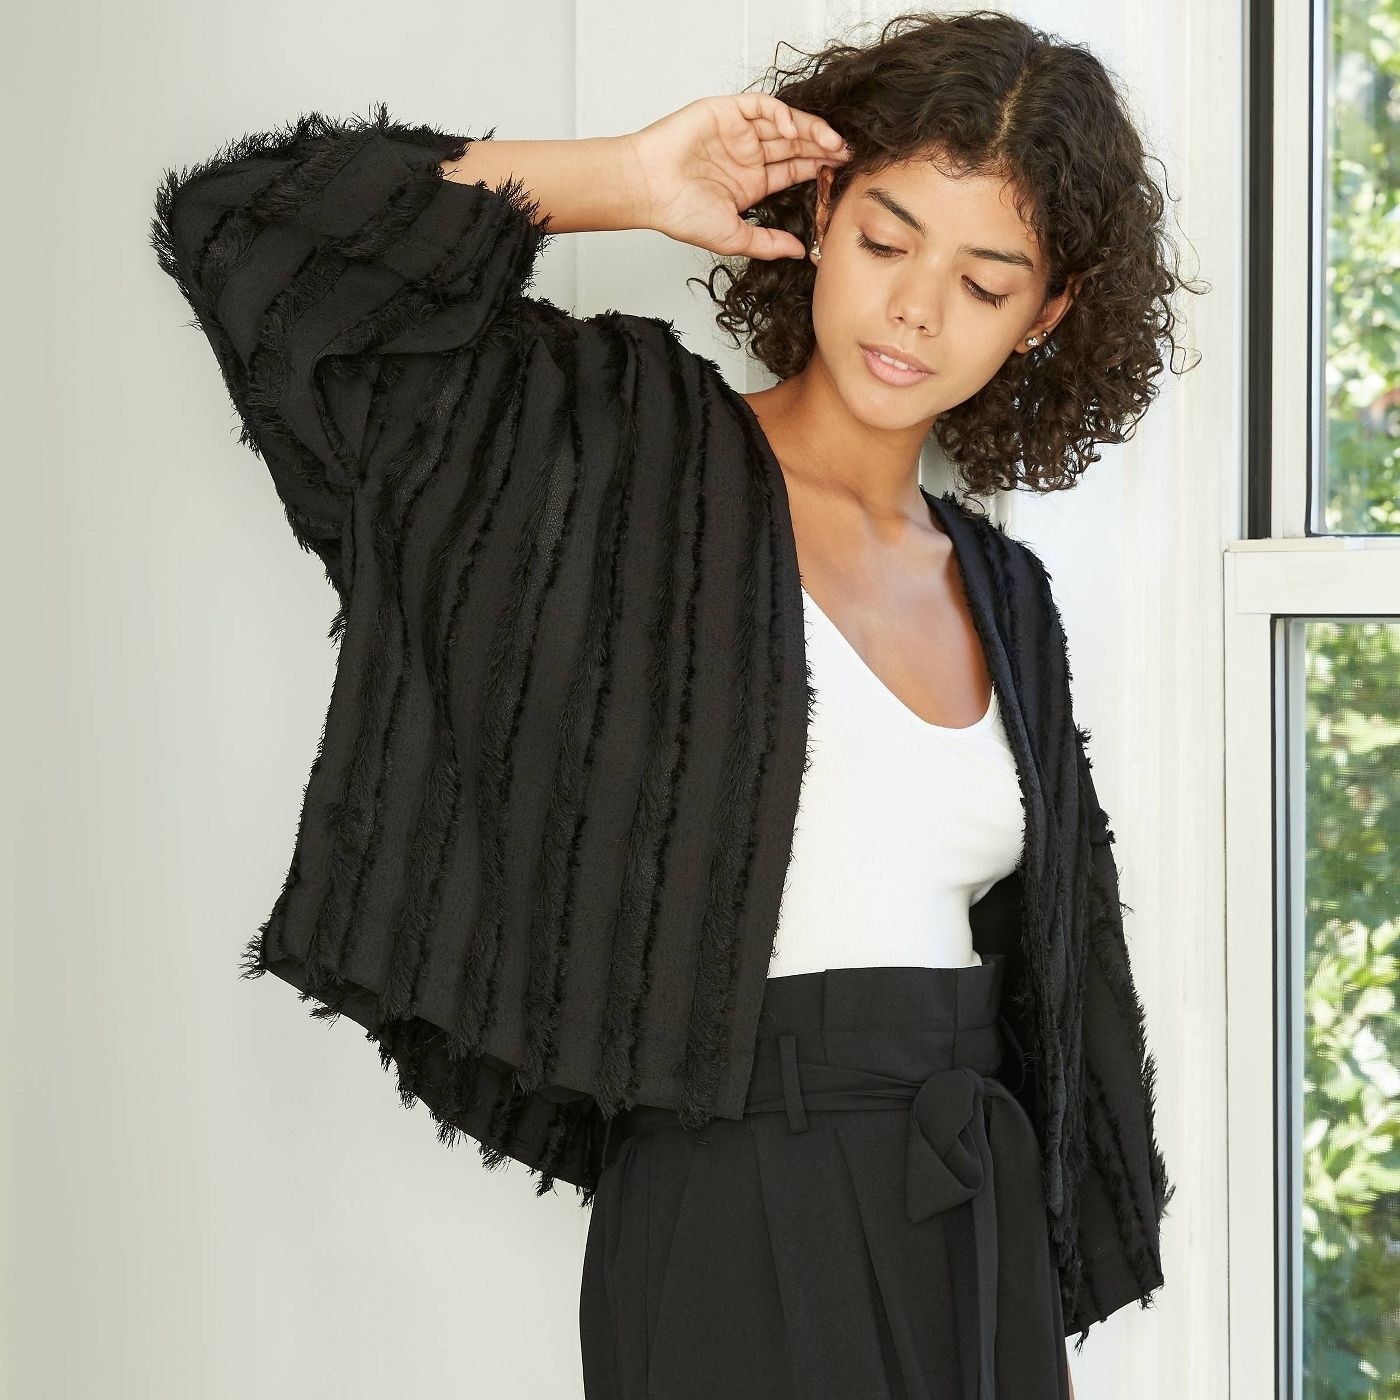 Model in textured fringe overcoat